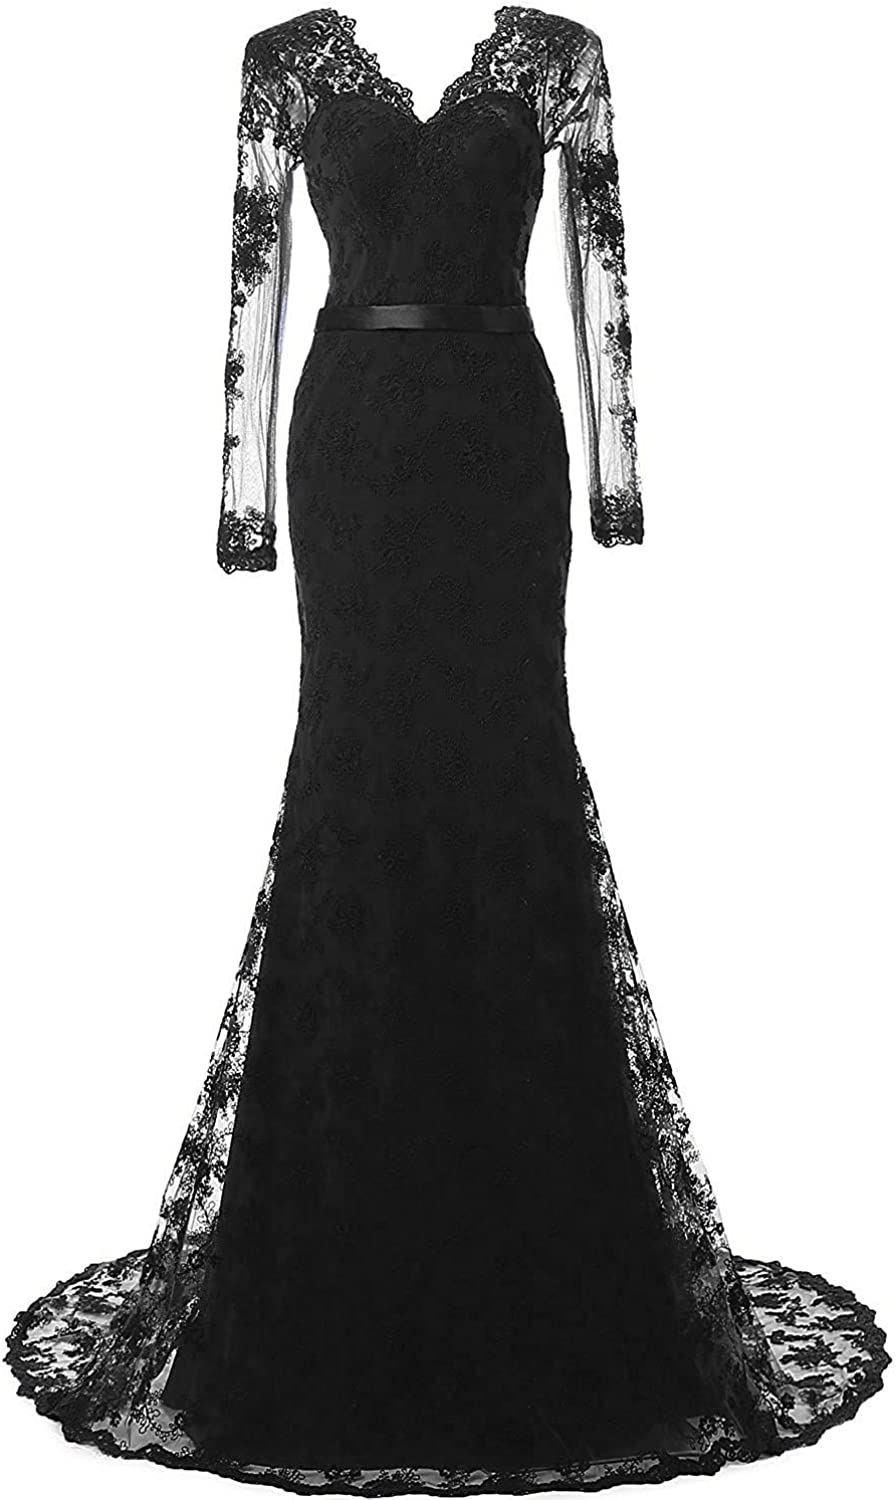 Topashe Women's Long Sleeve Lace Appliques V Neck Illusion Evening Dress